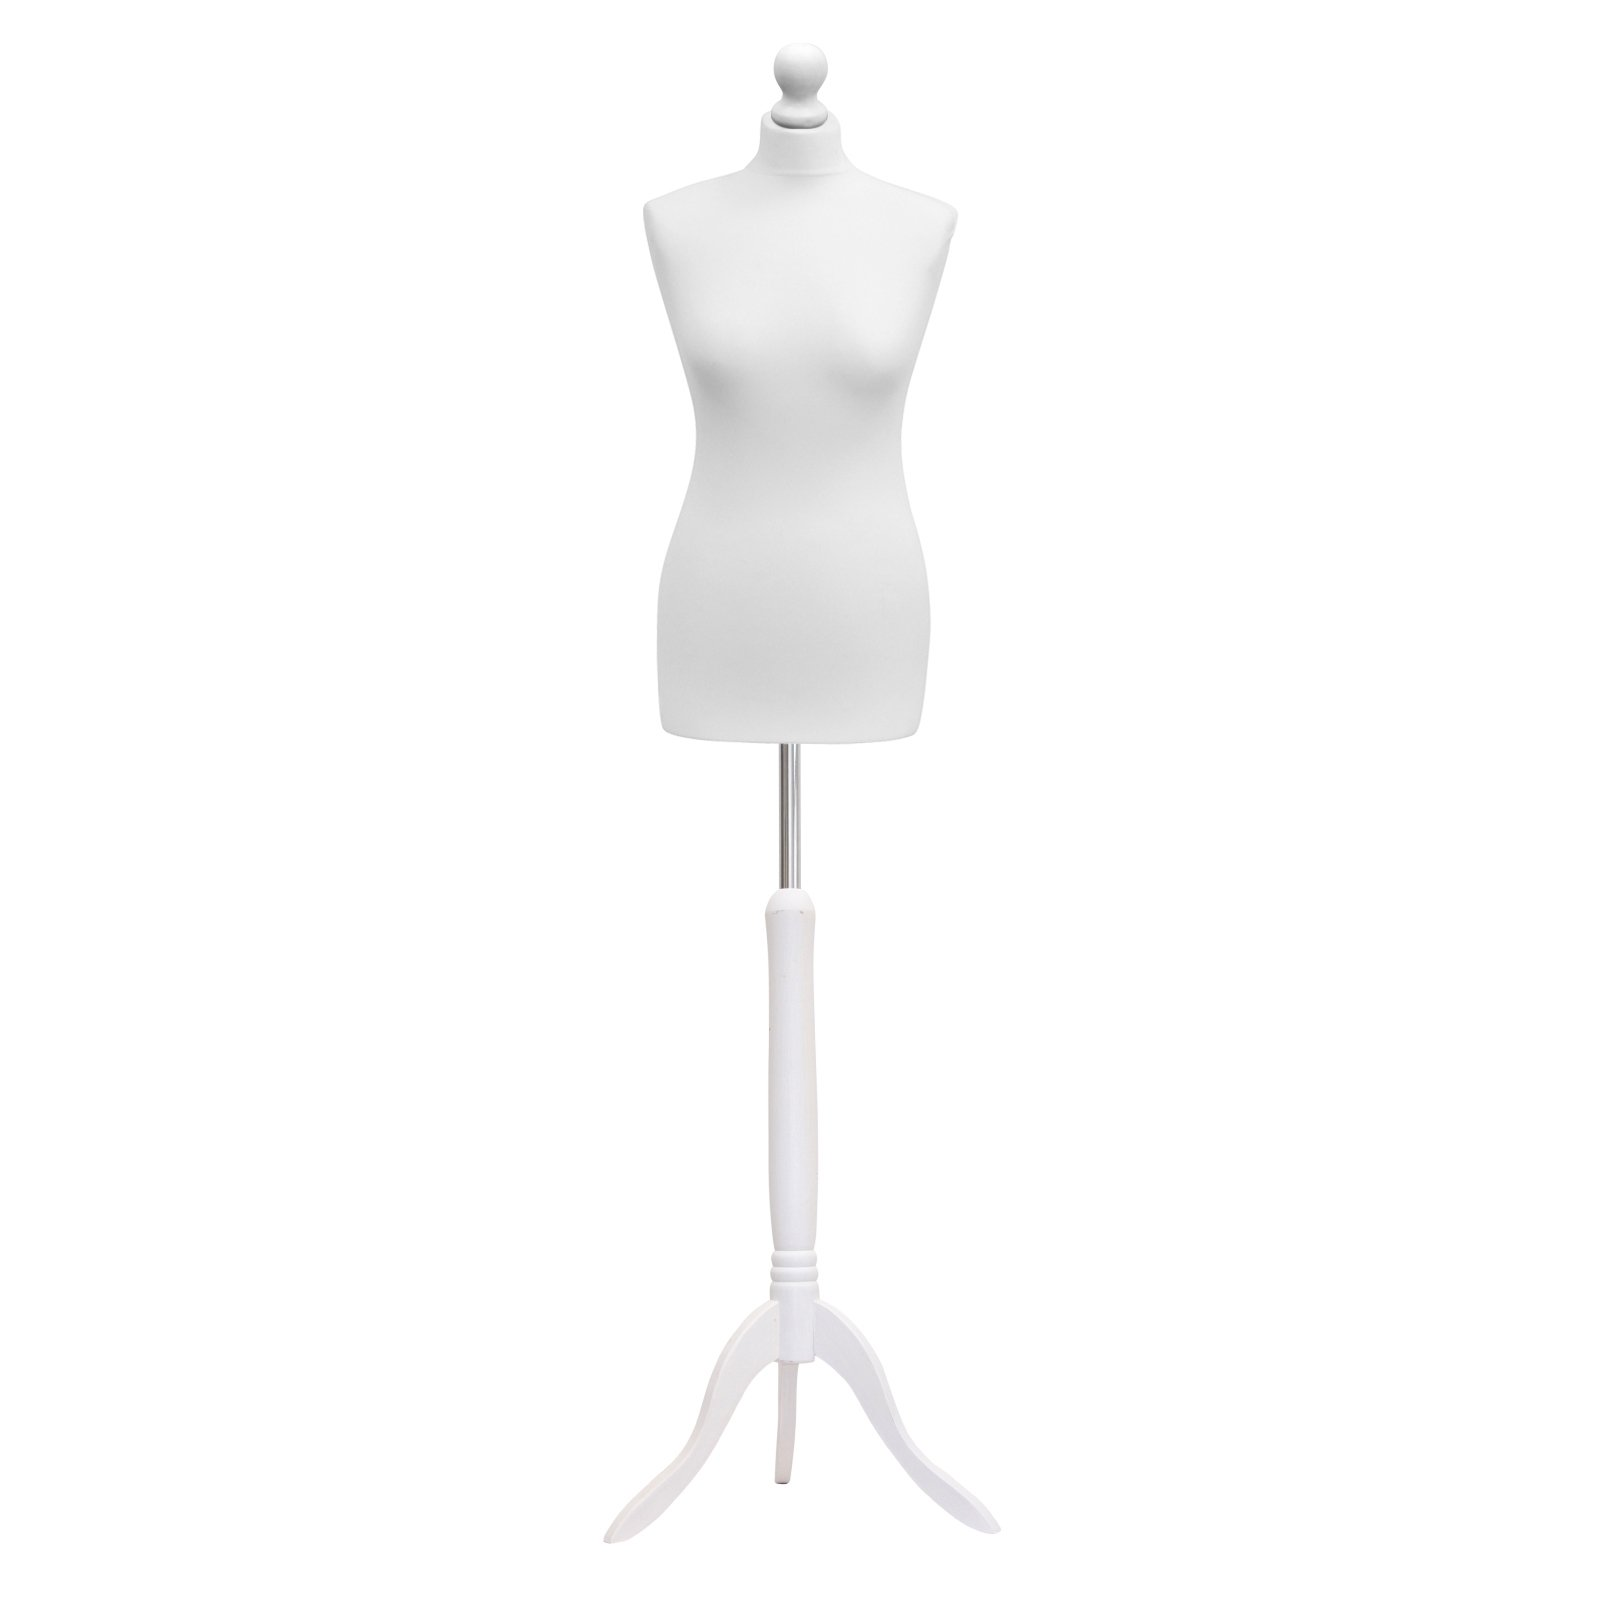 STERLING SILVER LTD Female Tailors Dummy Mannequin White Size 8/10 Dressmakers Fashion Students Display Bust With A White Wood Base